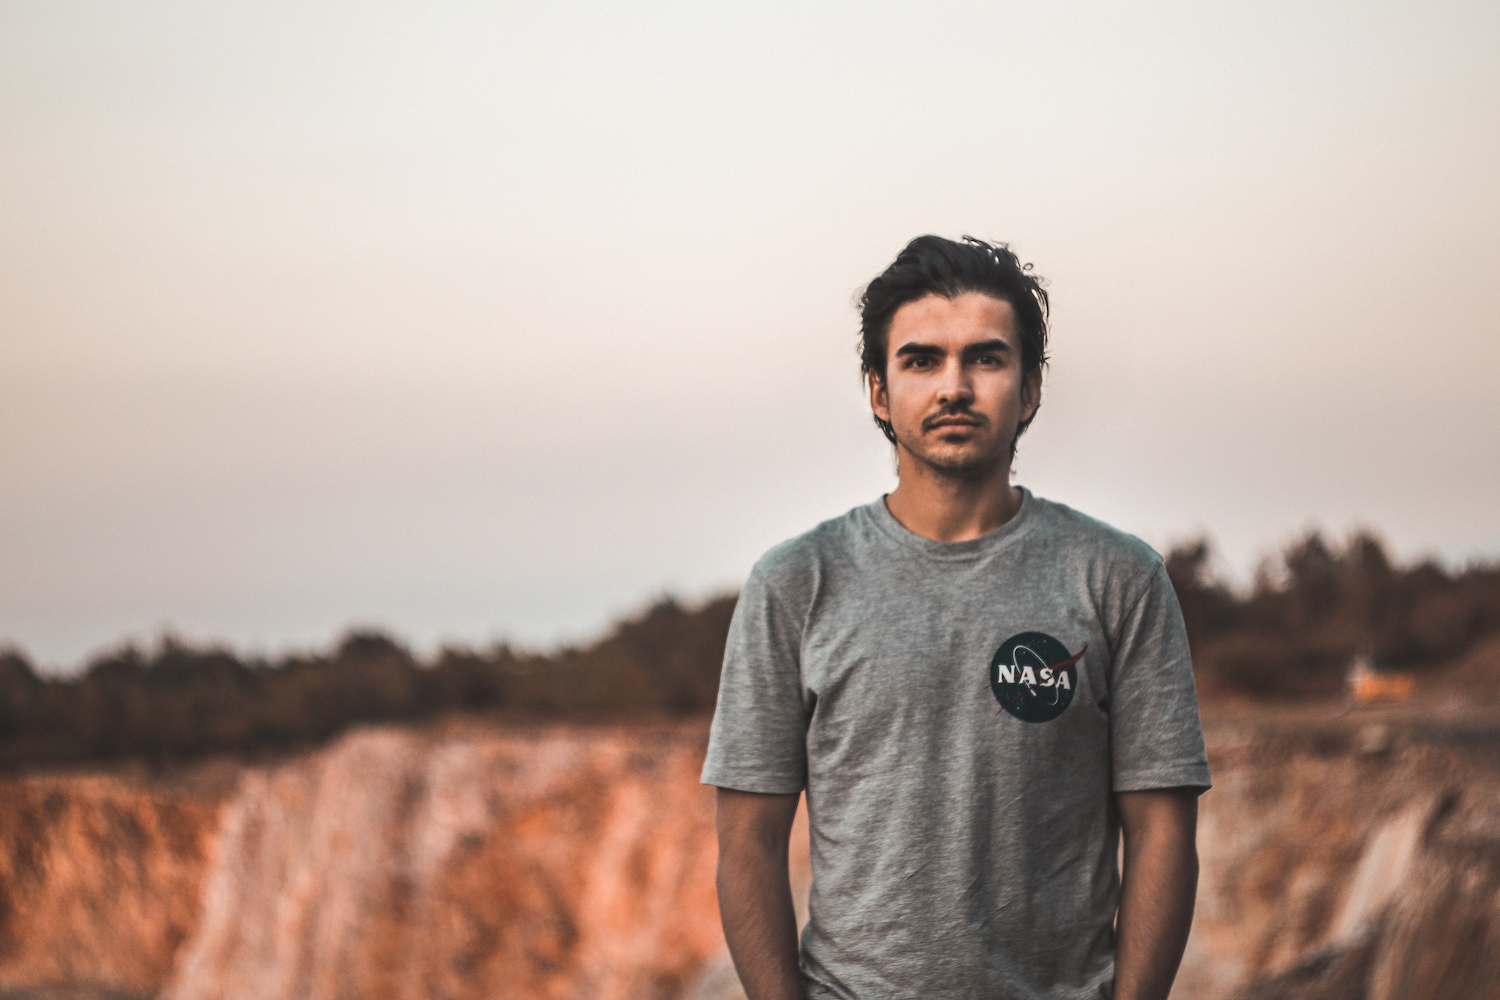 A guy in NASA t-shirt standing in a quarry.